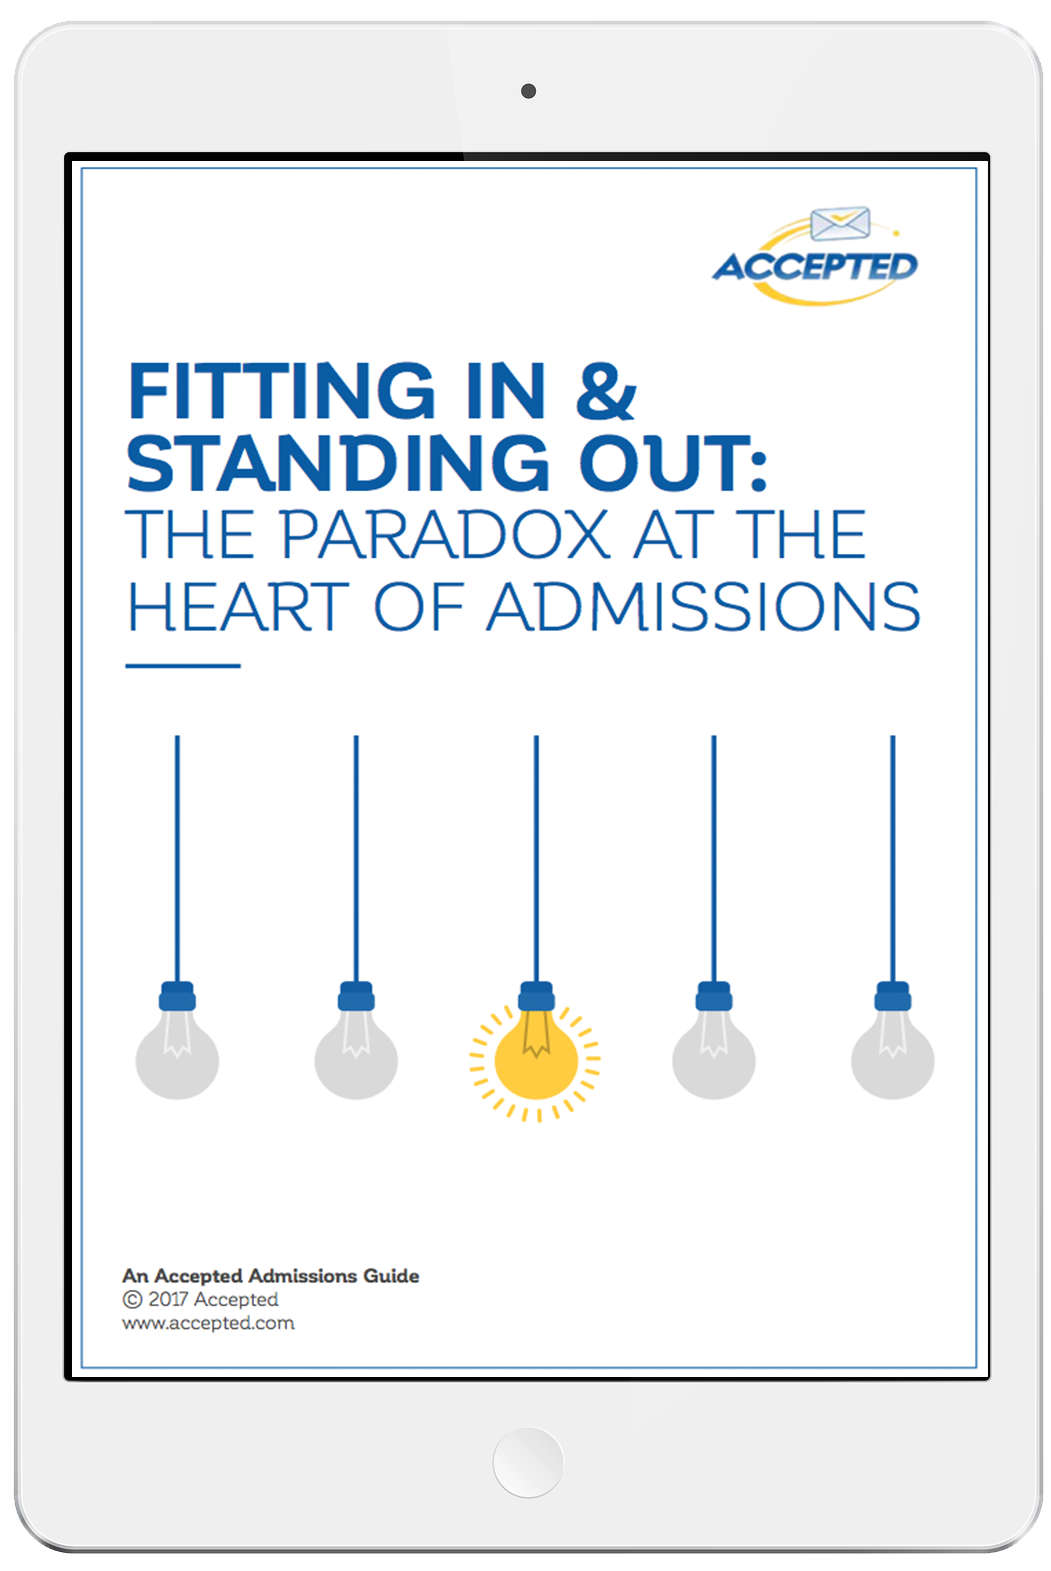 Download our guide to fitting in and standing out!